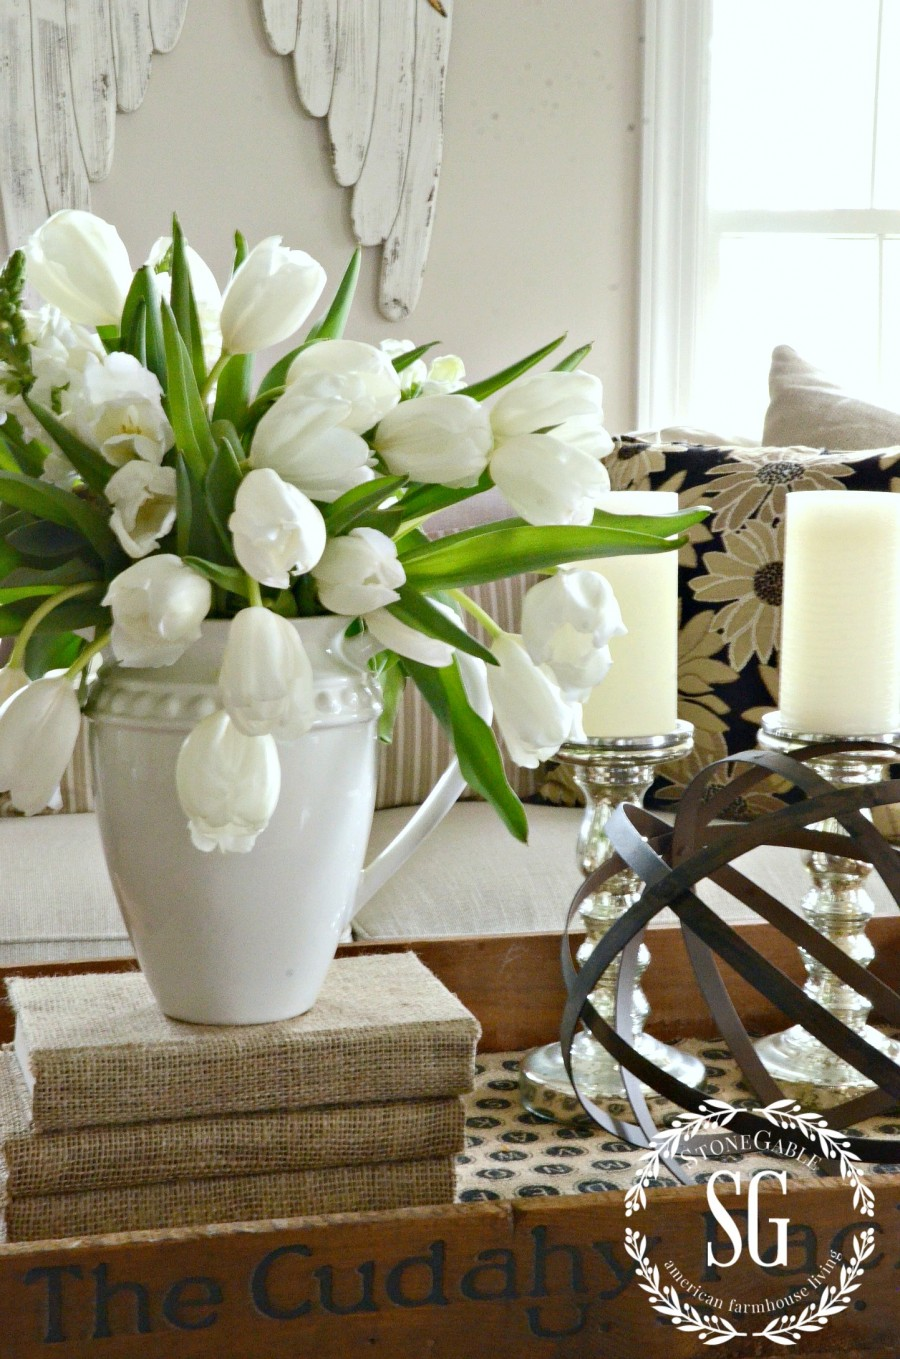 5 GREAT USES FOR PITCHERS... FARMHOUSE STYLE-pither with white tulips-stonegableblog.com